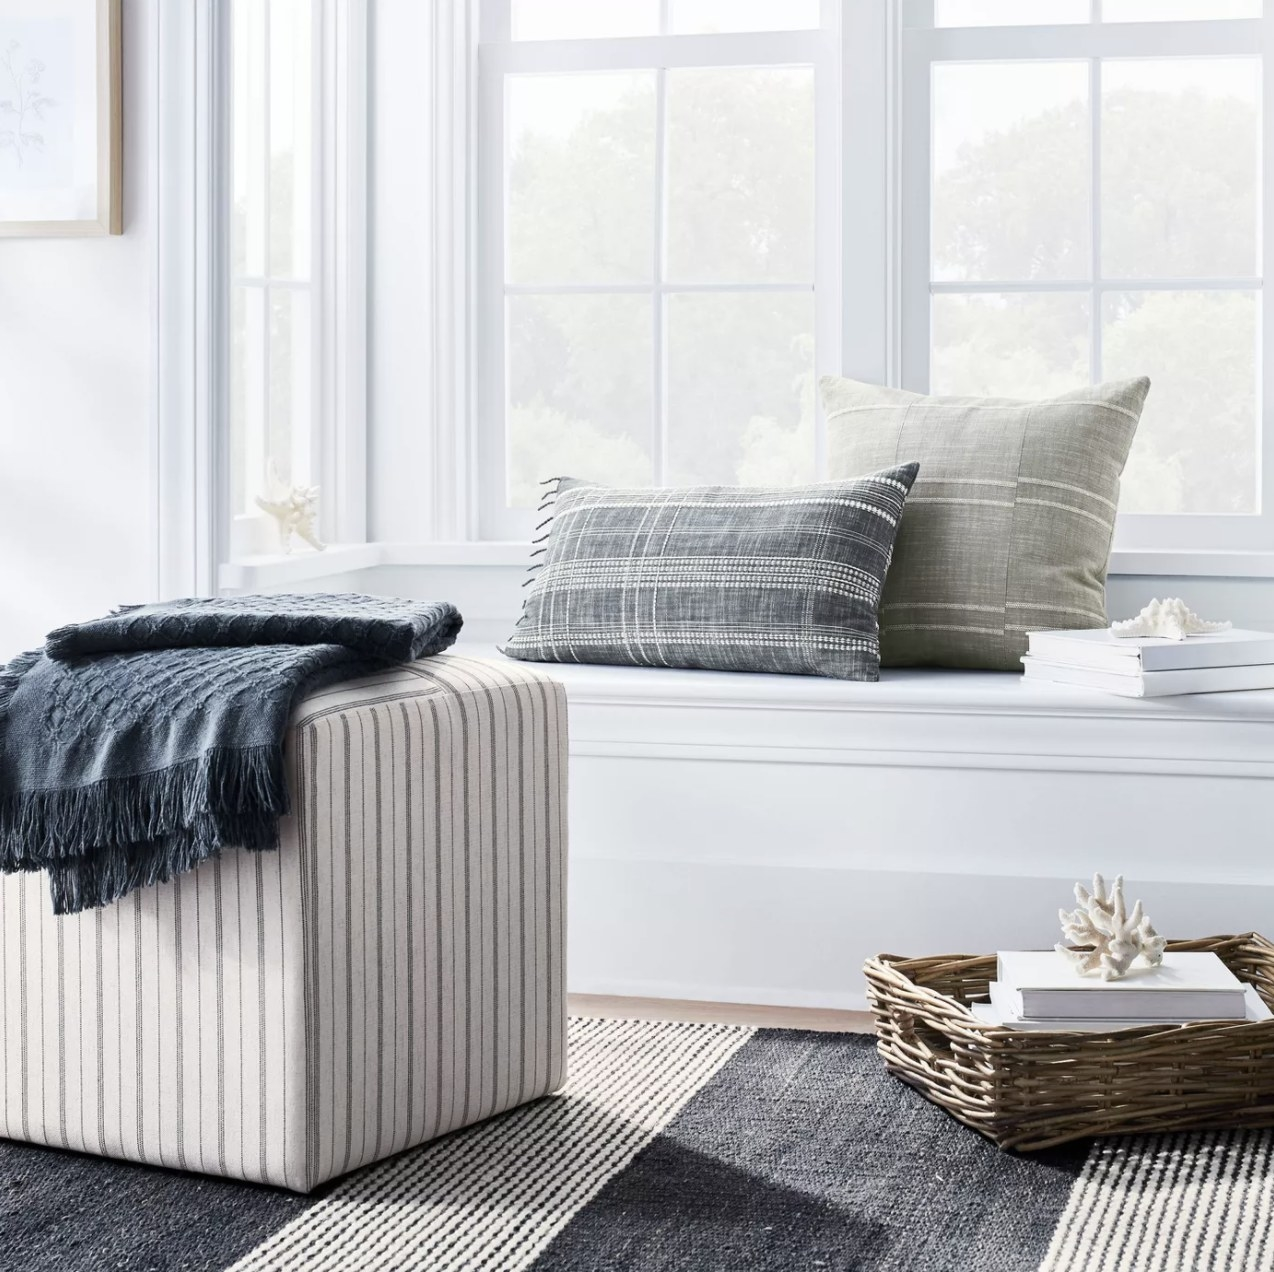 The ottoman in the stripe white pattern